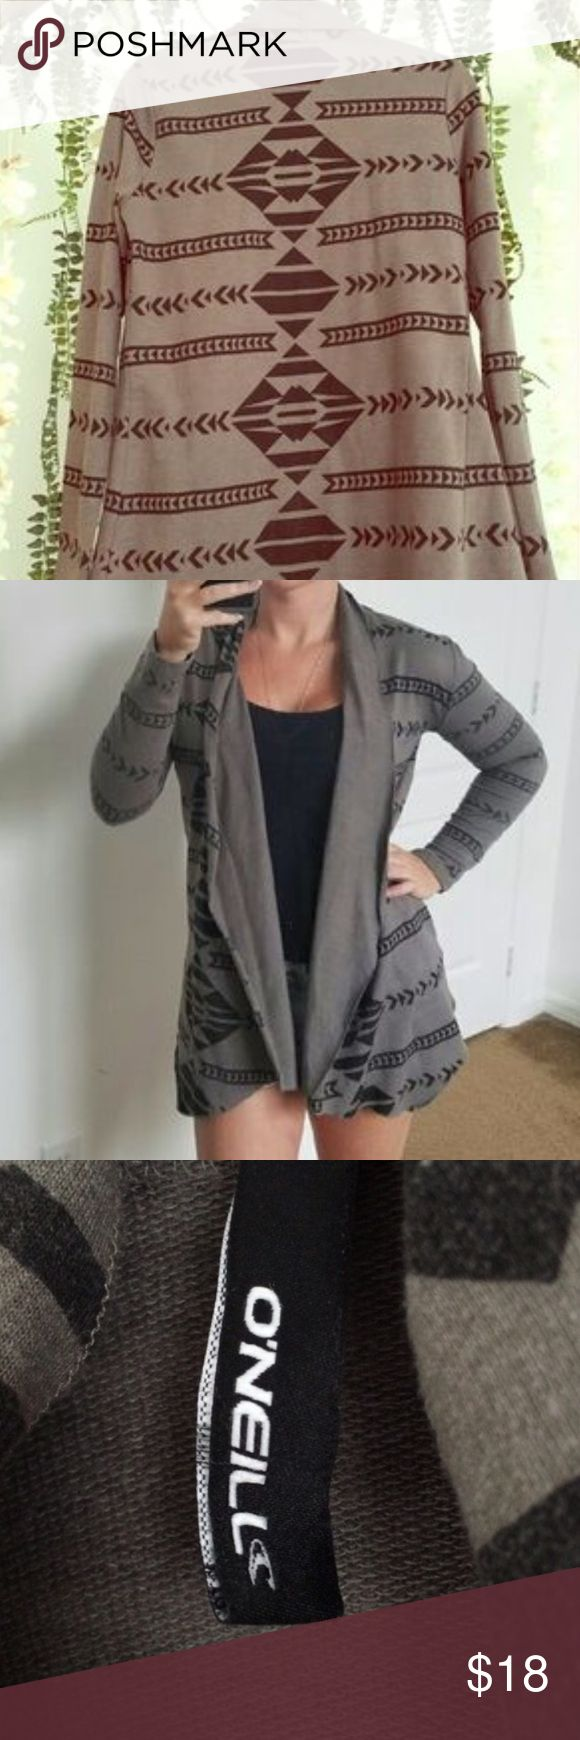 O'Neill Tribal Cardigan Perfect for the fall season! This black and grey tribal cardigan made by O'Neill is the perfect addition to any closet. Light weight, soft, and comfortable. Lightly worn and in perfect condition. Make an offer! O'Neill Sweaters Cardigans